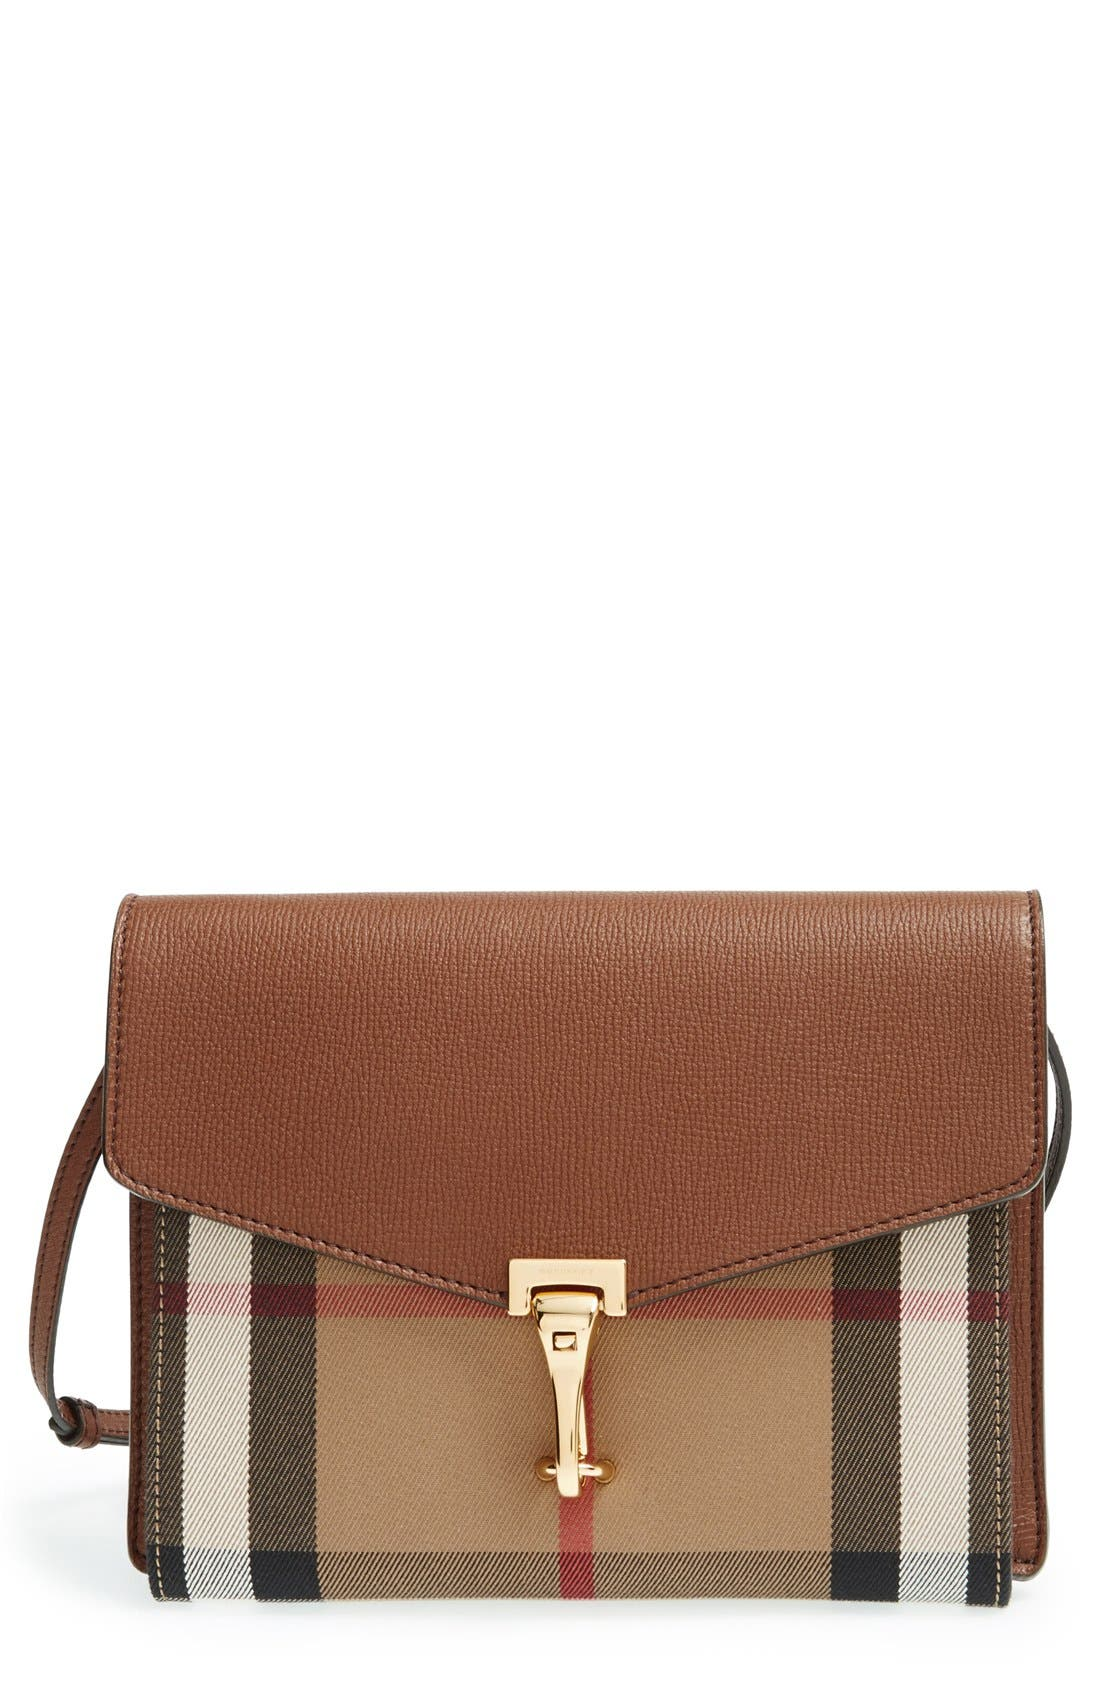 Burberry 'Small Macken' Check Crossbody Bag